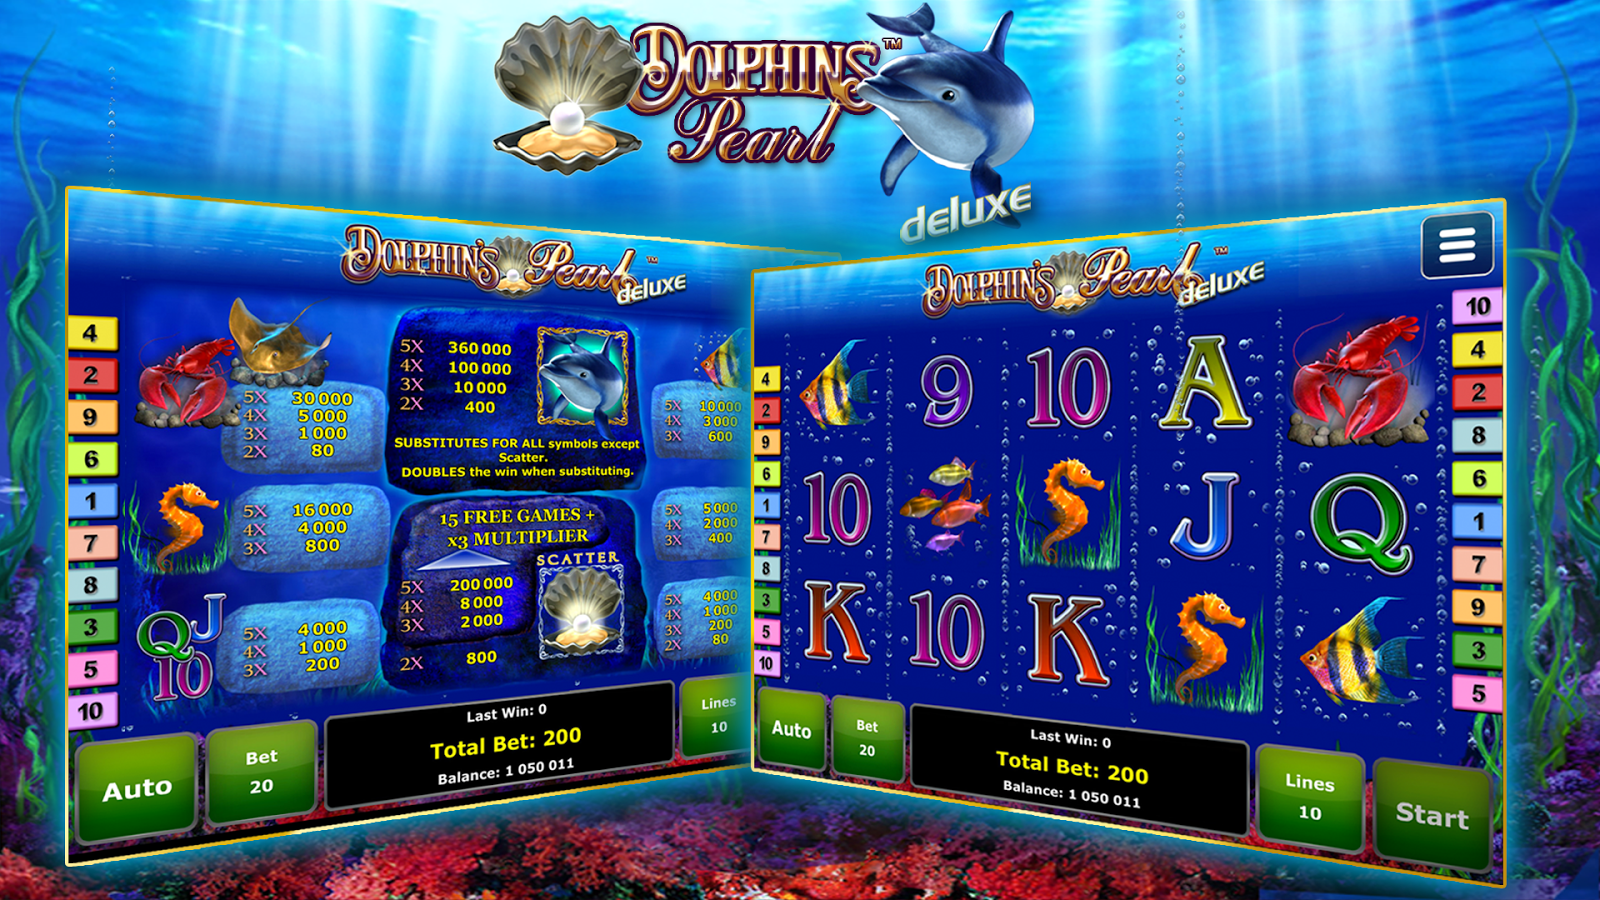 star casino online games twist slot